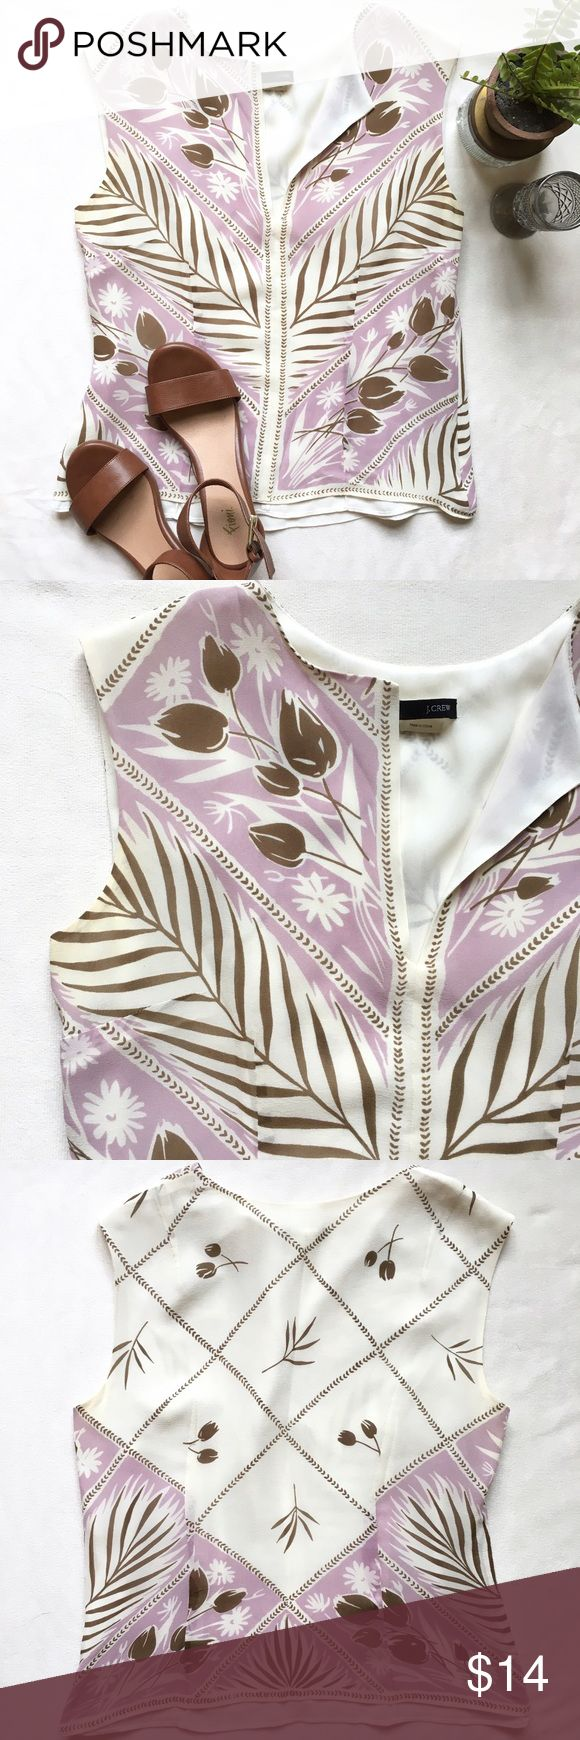 J. Crew Tank Blouse Stunning feminine floral Tank Blouse with simple lapel style neck line. Has a bit of a tropical flat with the palm branch pattern. Zip side closure. Miner discoloration on arm pit area (see photo) and small snag mid/bottom front Blouse. Otherwise in good condition! J. Crew Tops Blouses